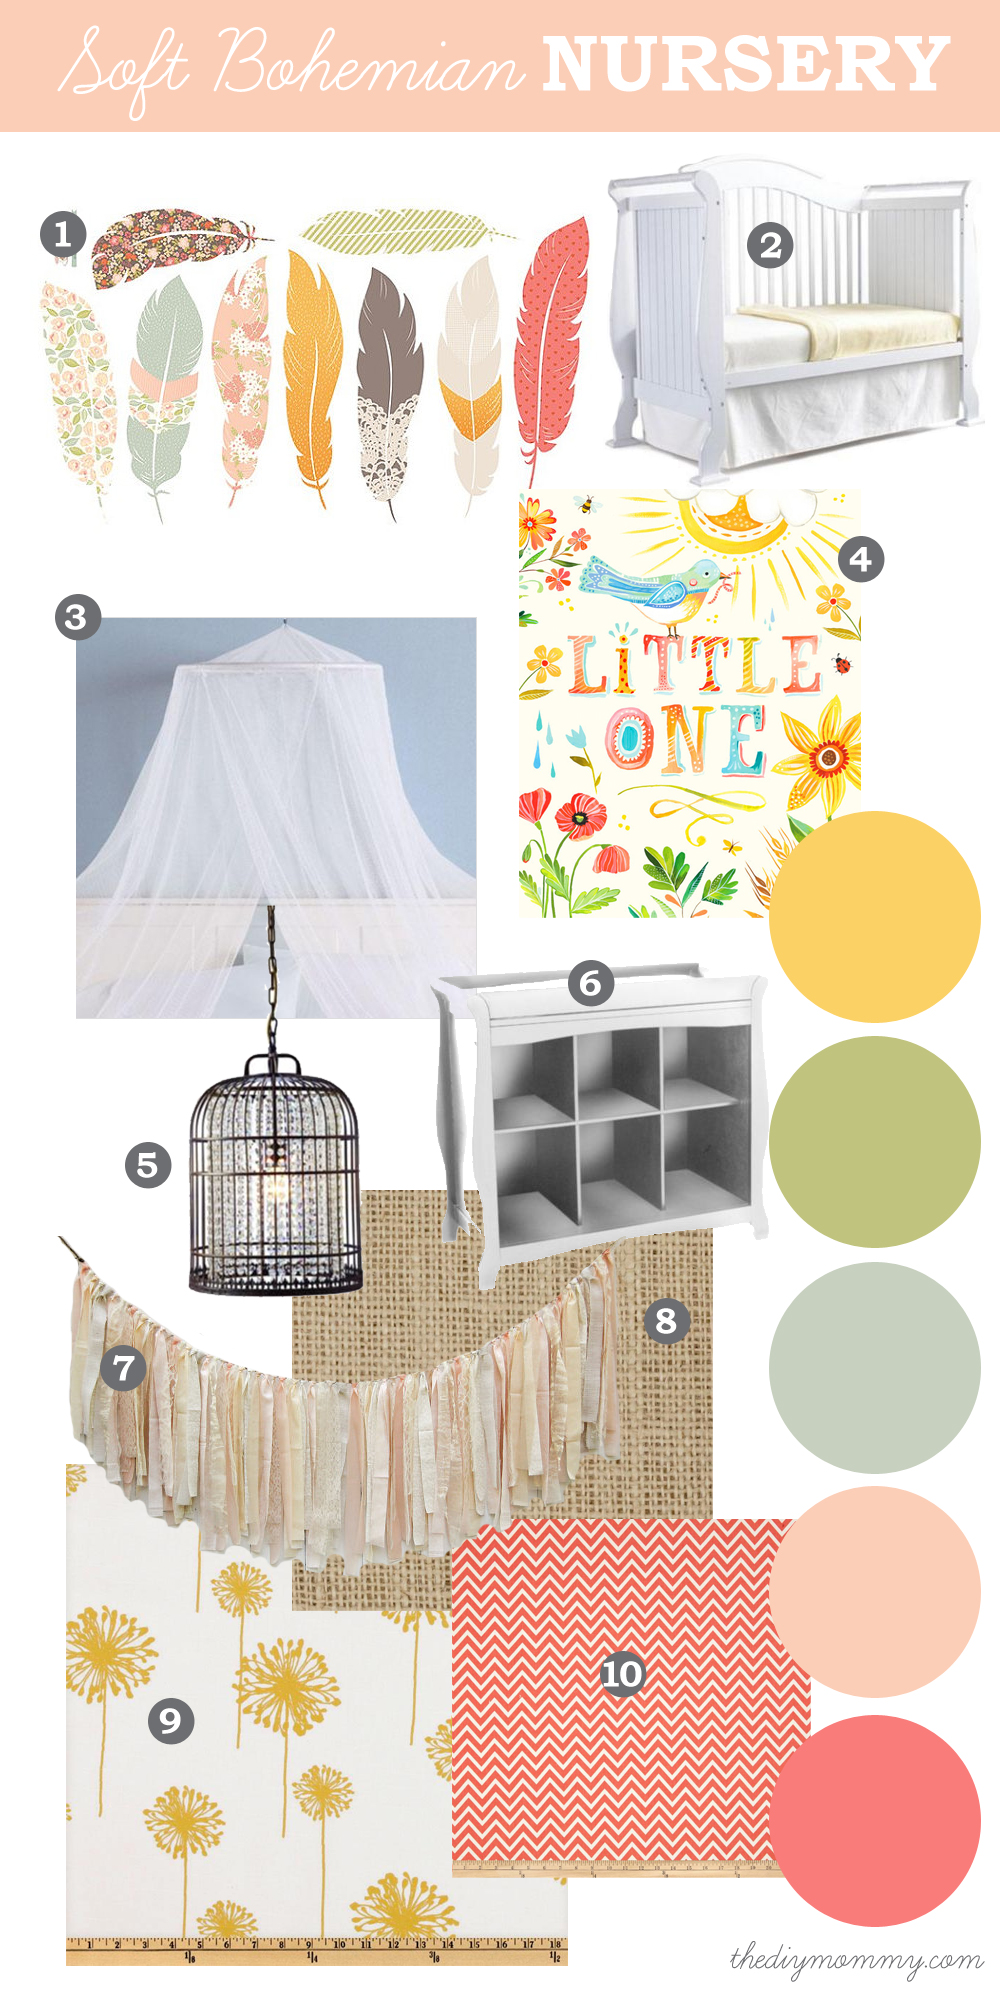 Mood Board: Soft, Eclectic Boho Nursery. Natural elements like feathers and burlap with soft, pastel colours like peach, coral, yellow and green.